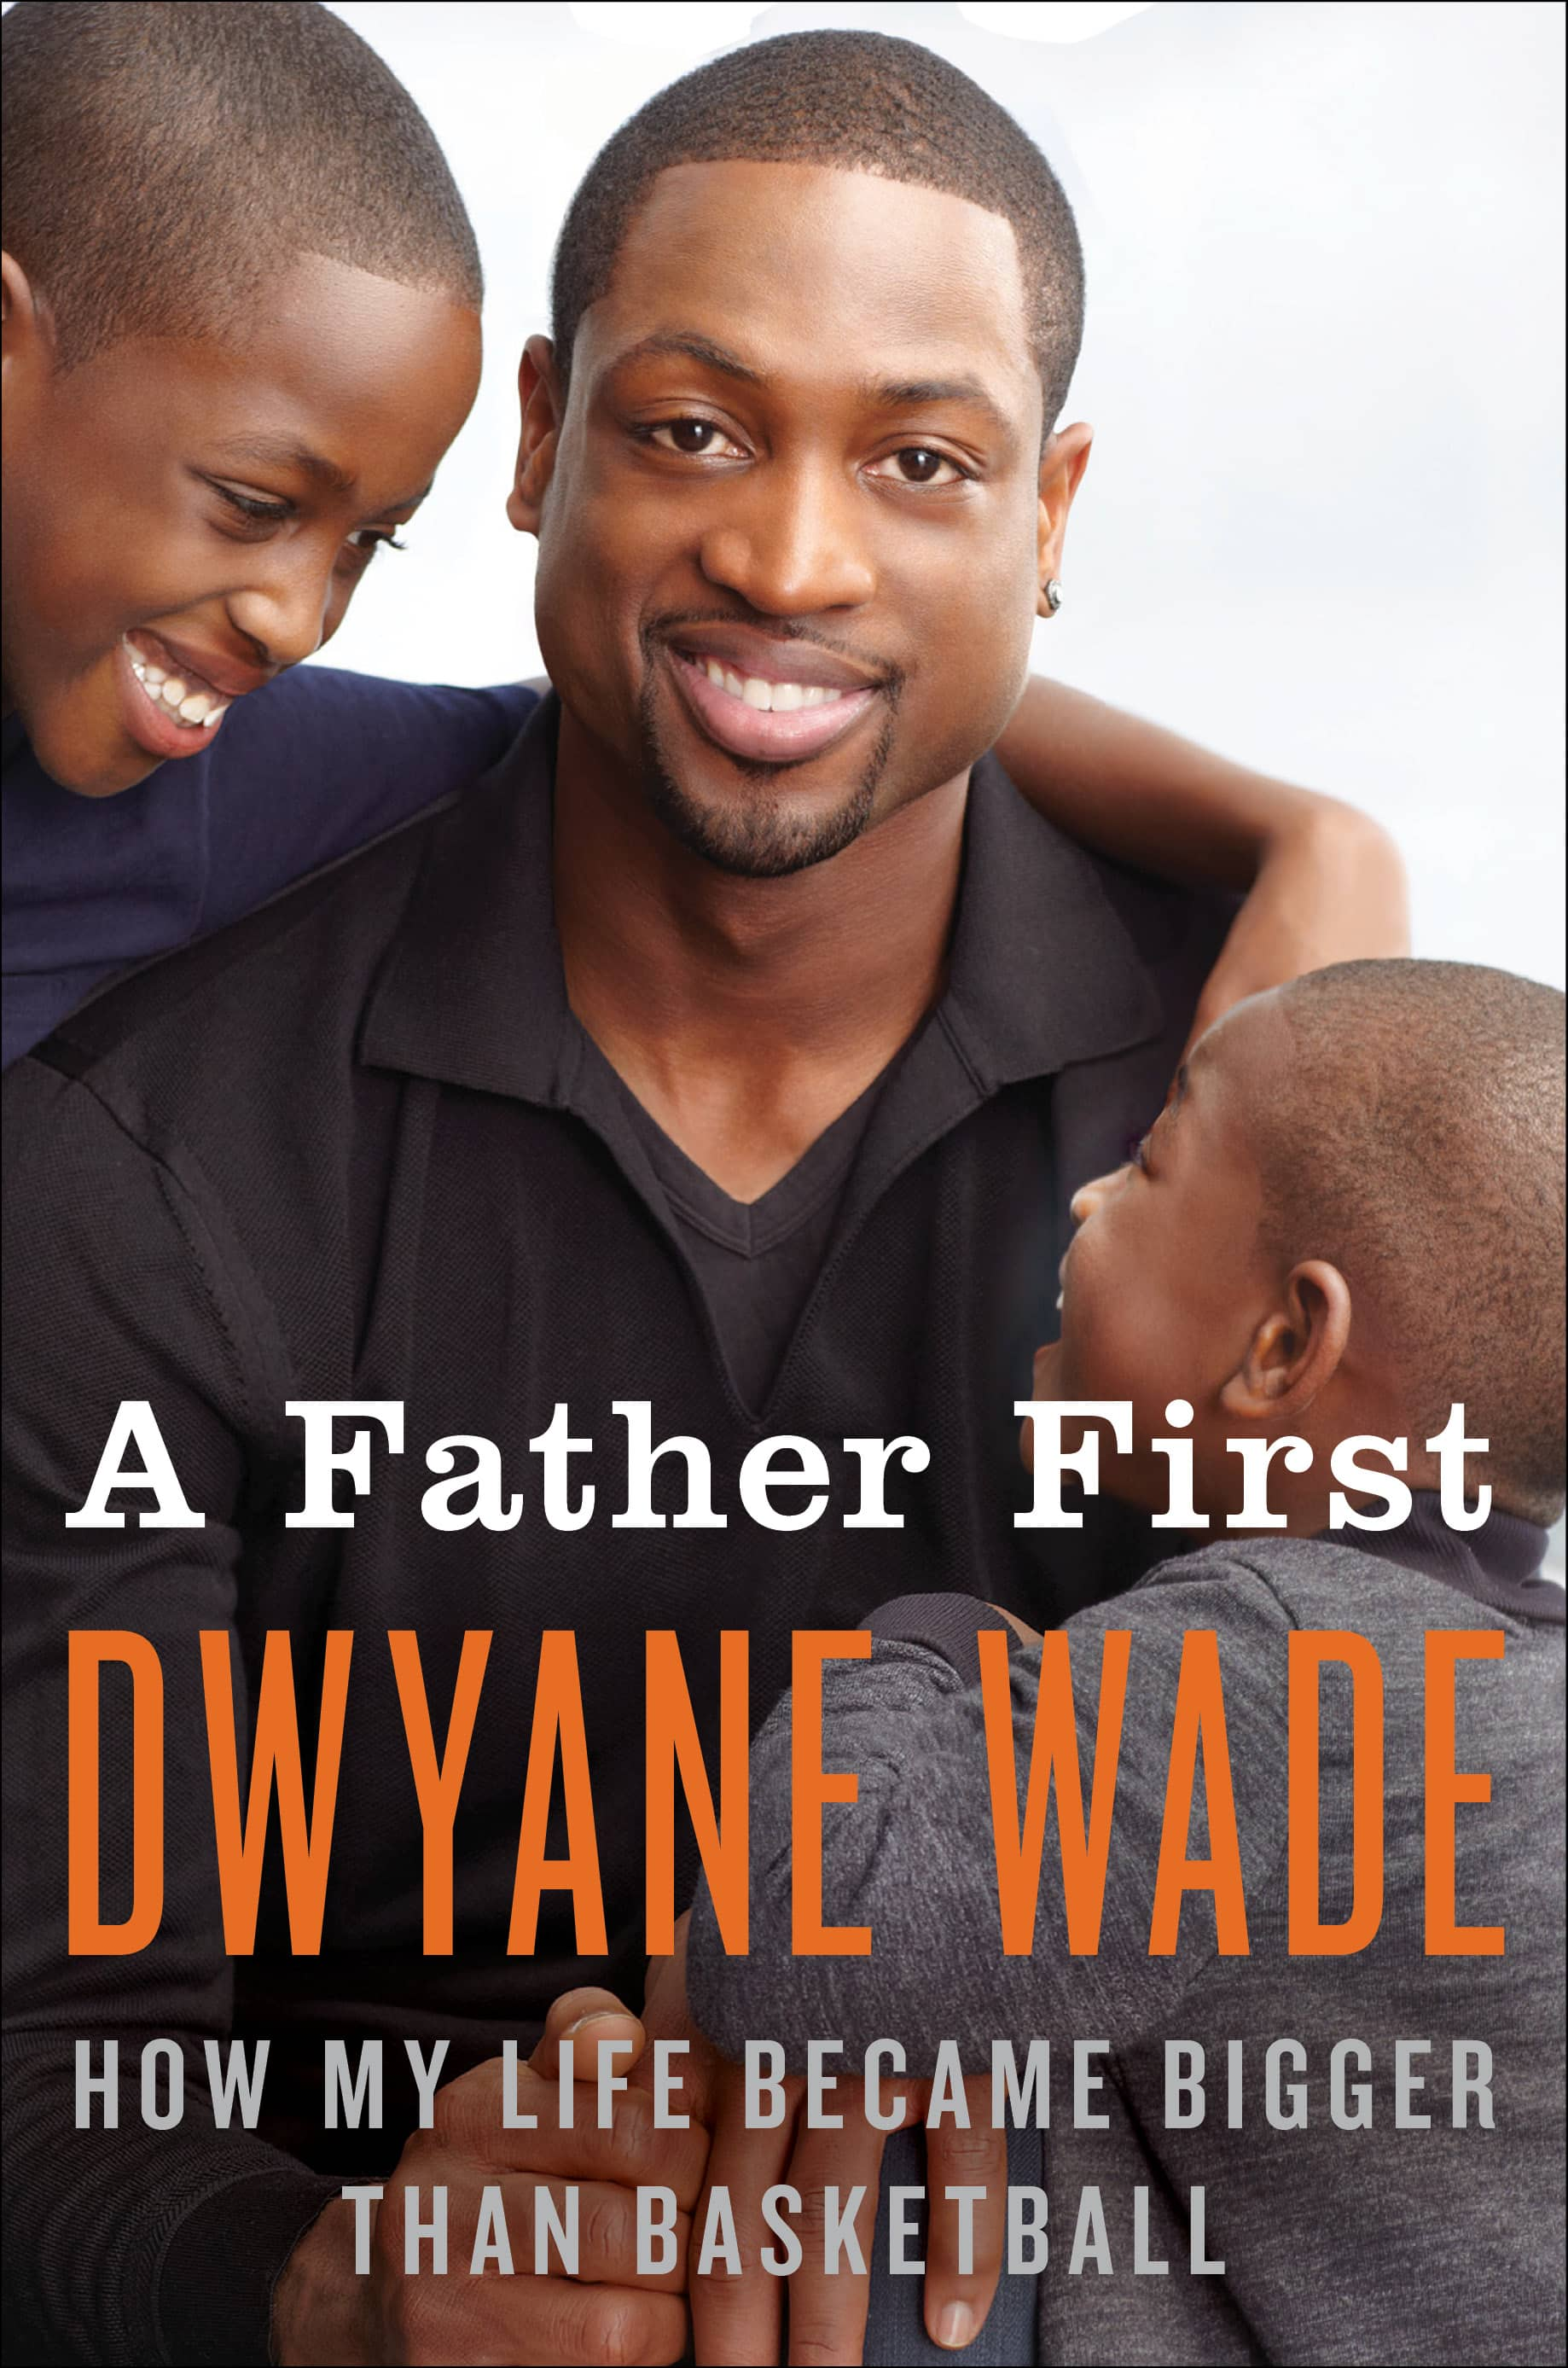 dwayne wade book cover